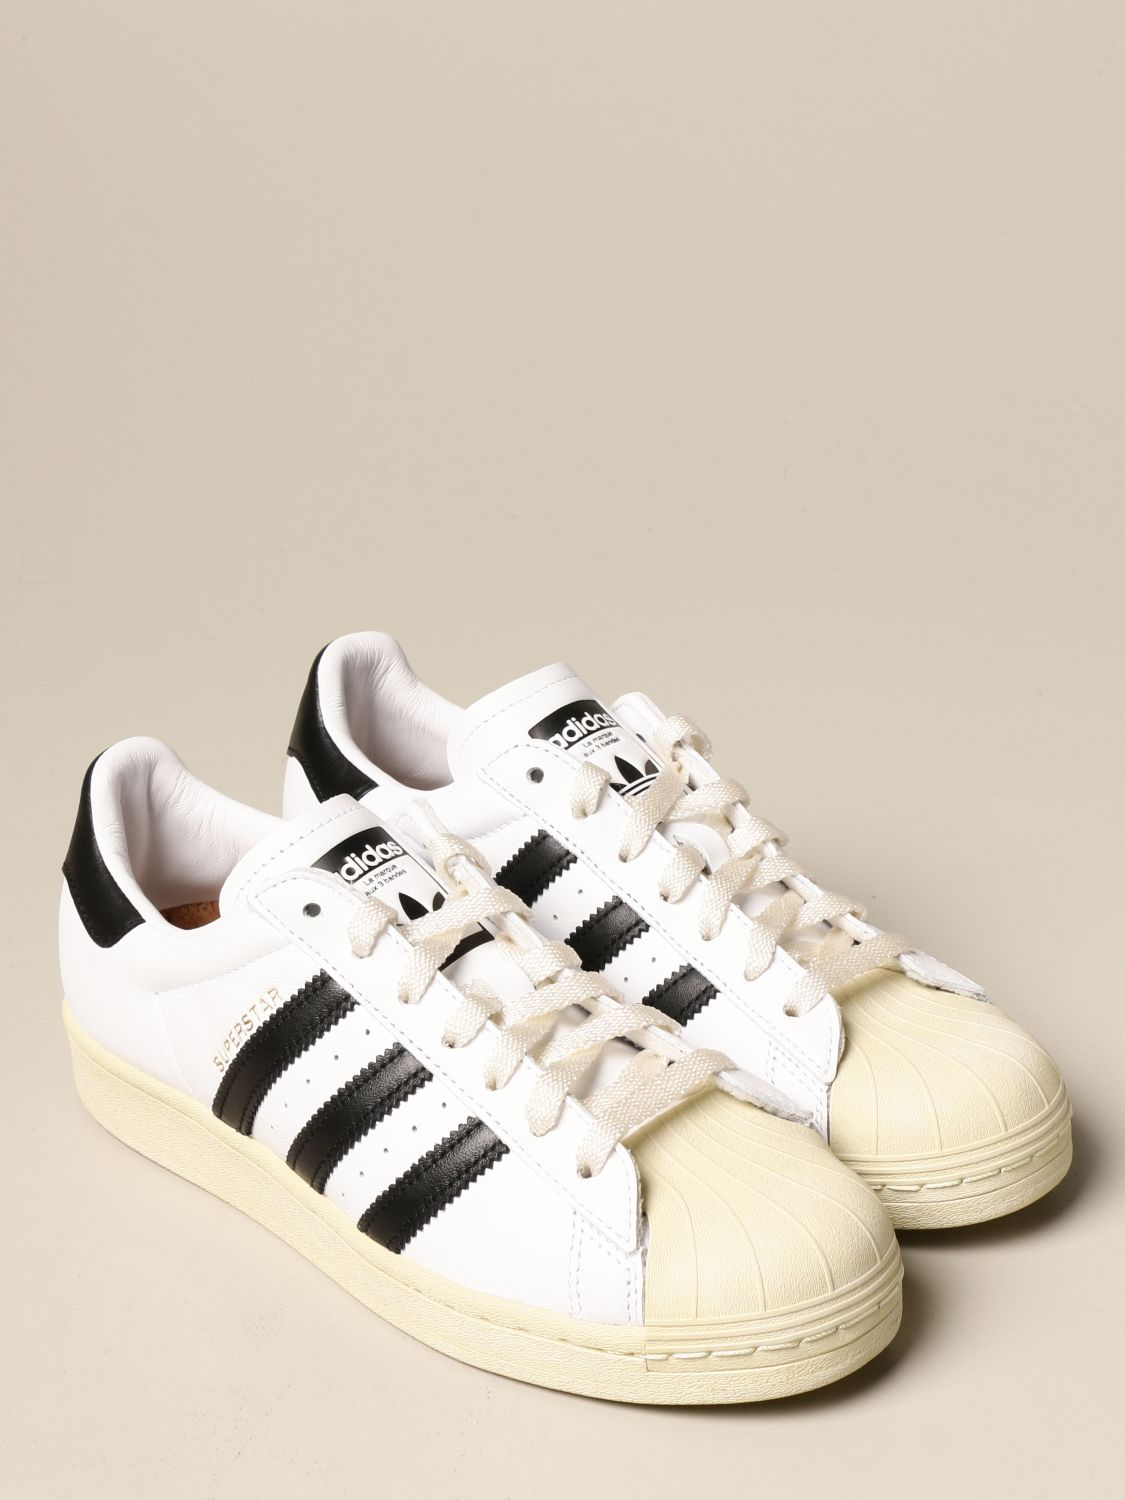 Trainers Adidas Originals: Trainers men Adidas Originals white 2